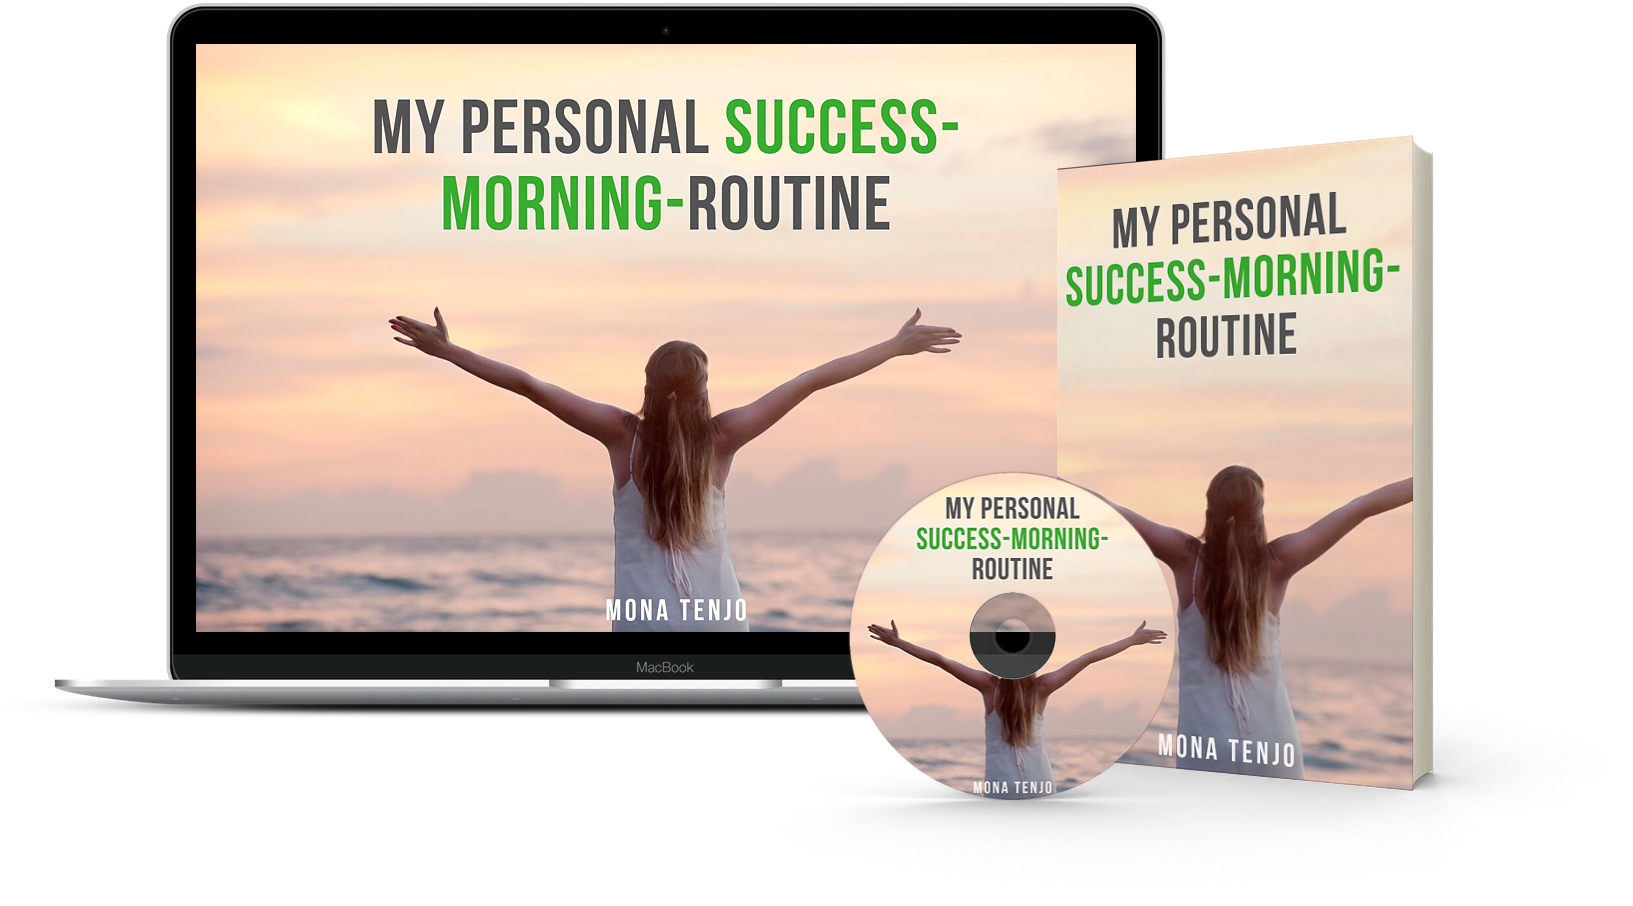 Personal Success-Morning-Routine